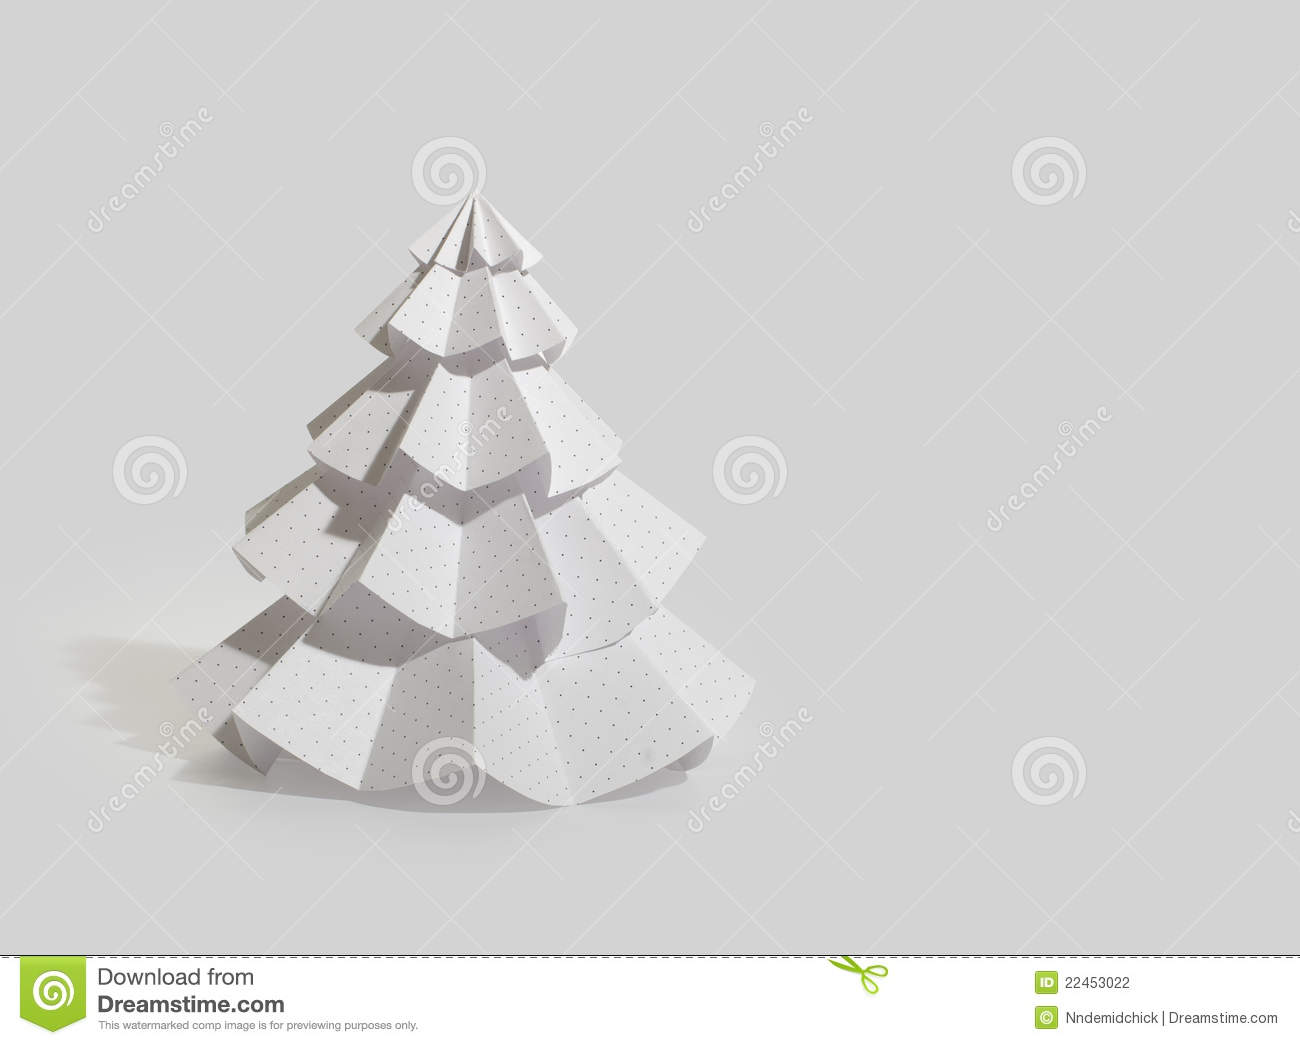 Handmade Christmas Tree Cut Out From Office Paper